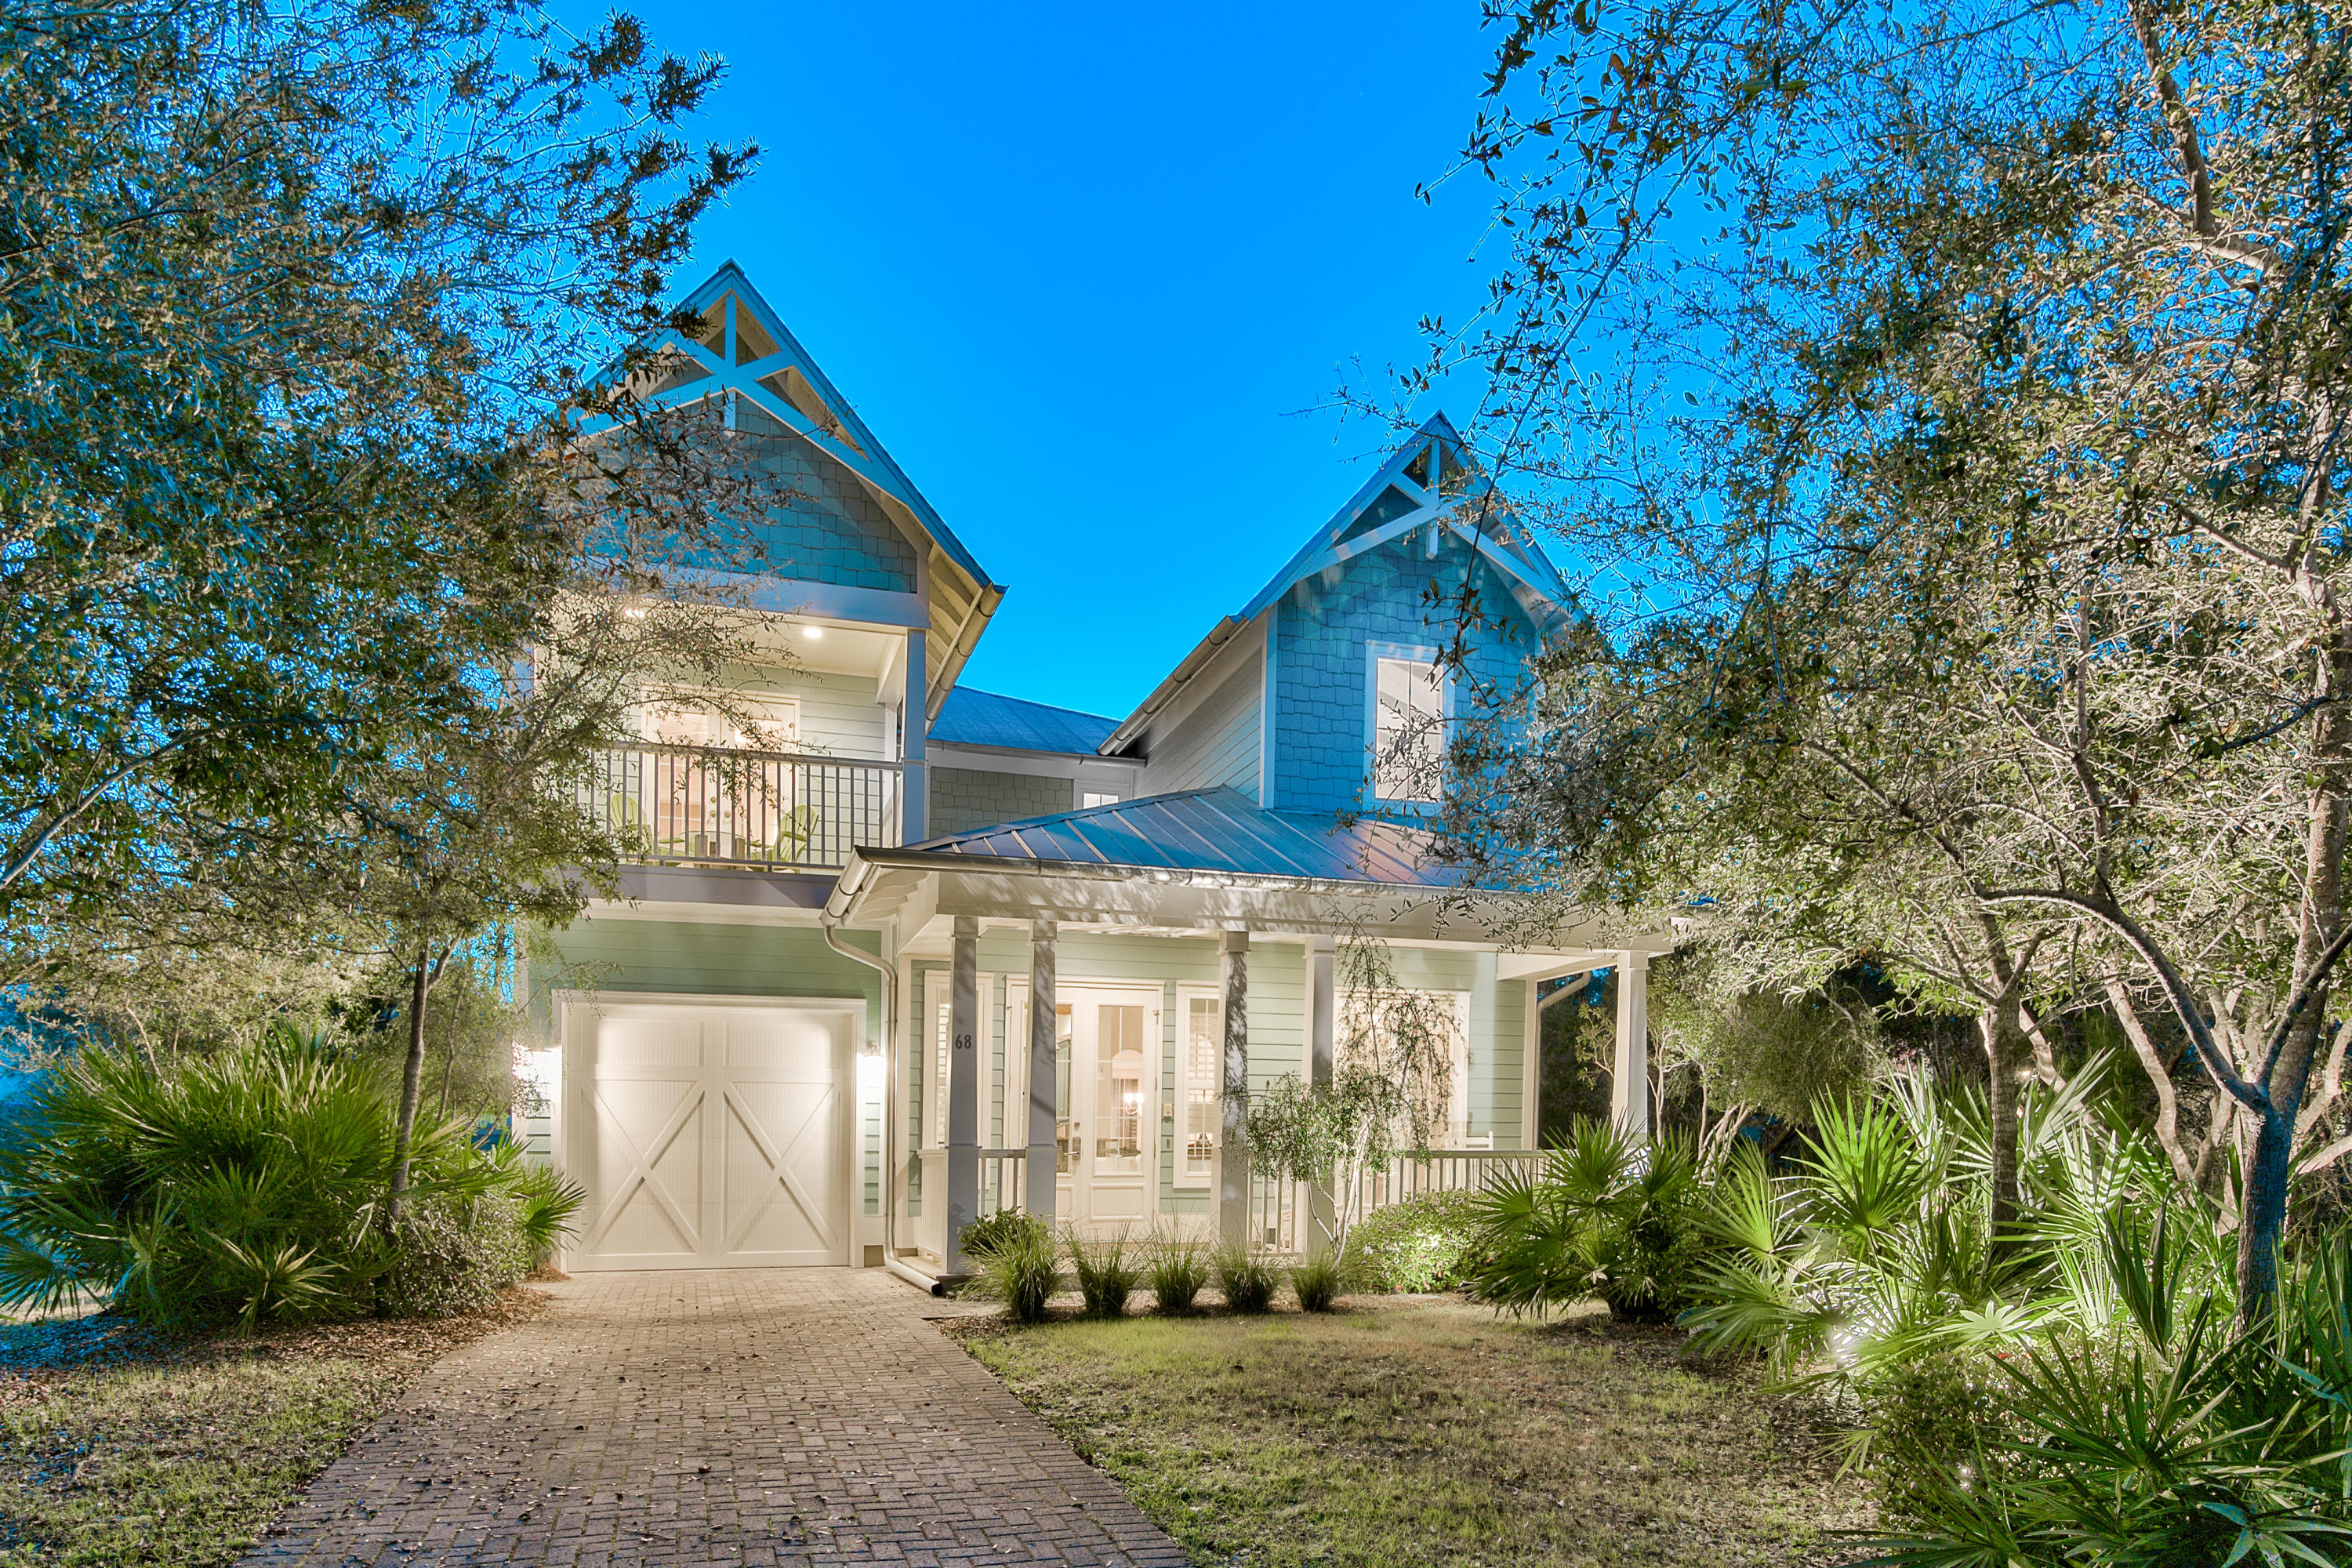 RARE JEWEL IN SEAGROVE BEACH...A MUST SEE!This beautiful beach house in the heart of Seagrove is on